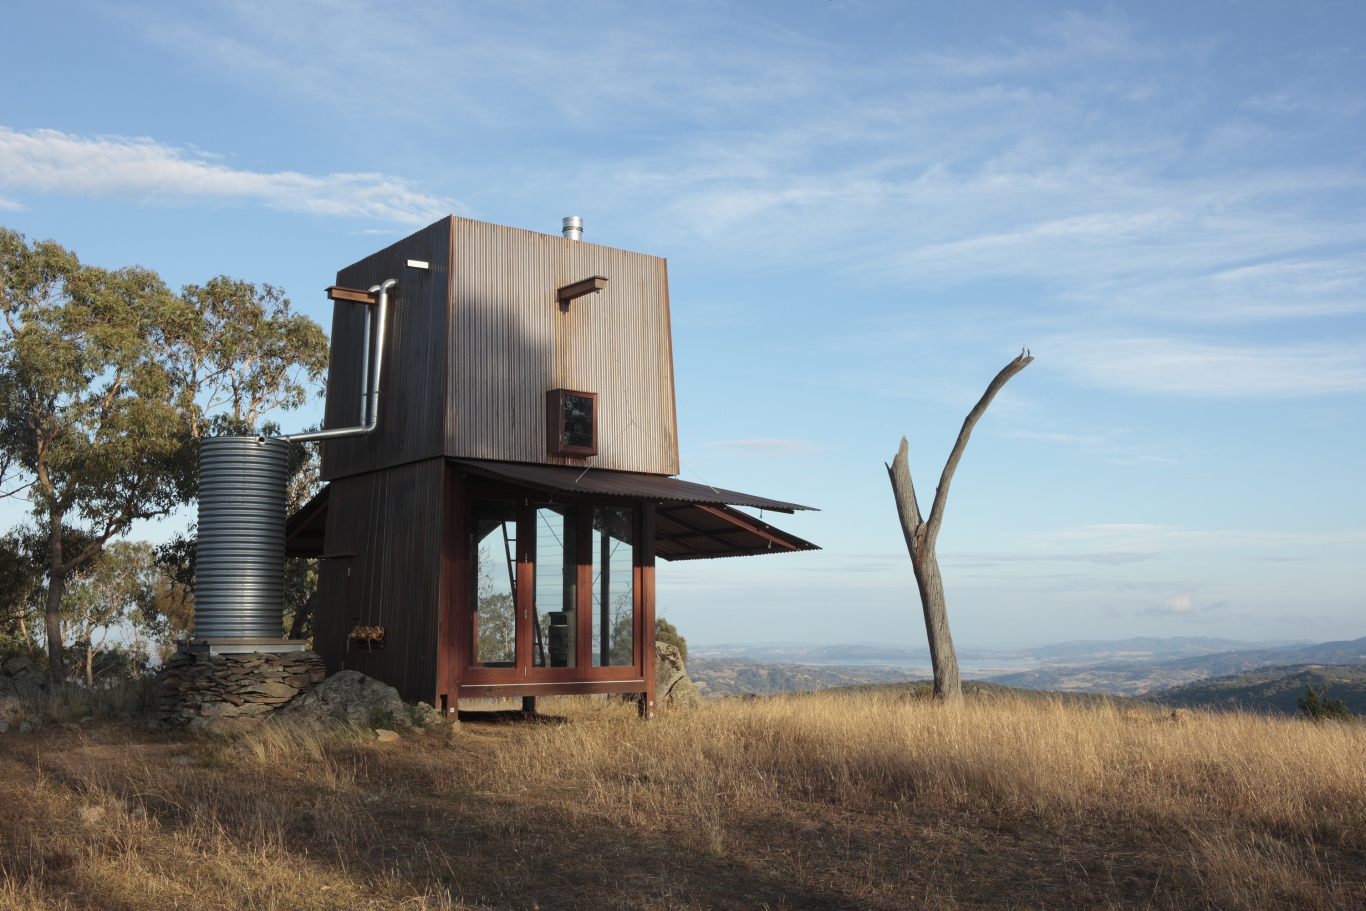 Image showing a cabin looking out onto a fantastic view